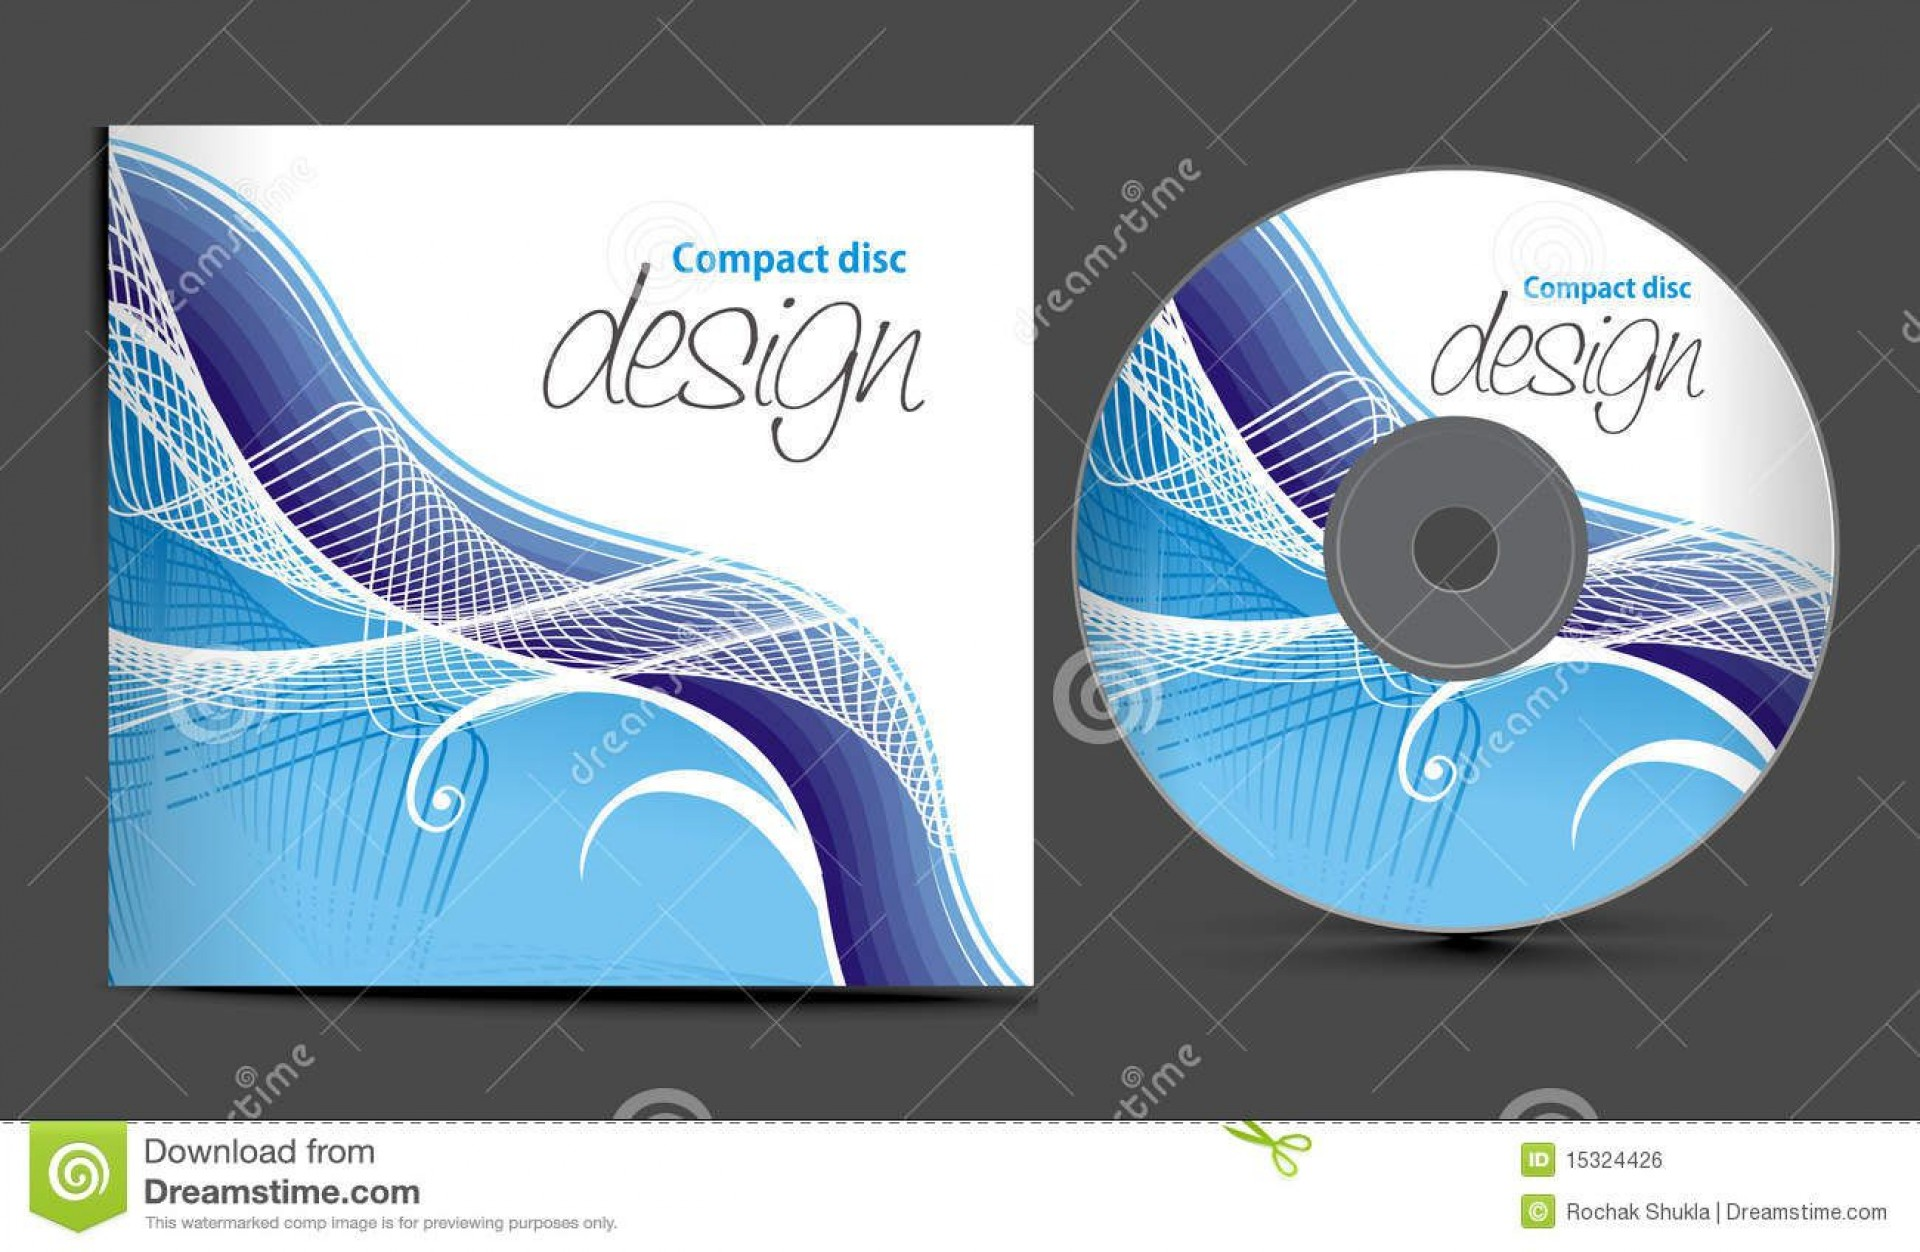 002 Awesome Cd Design Template Free Inspiration  Cover Download Word Label Wedding1920